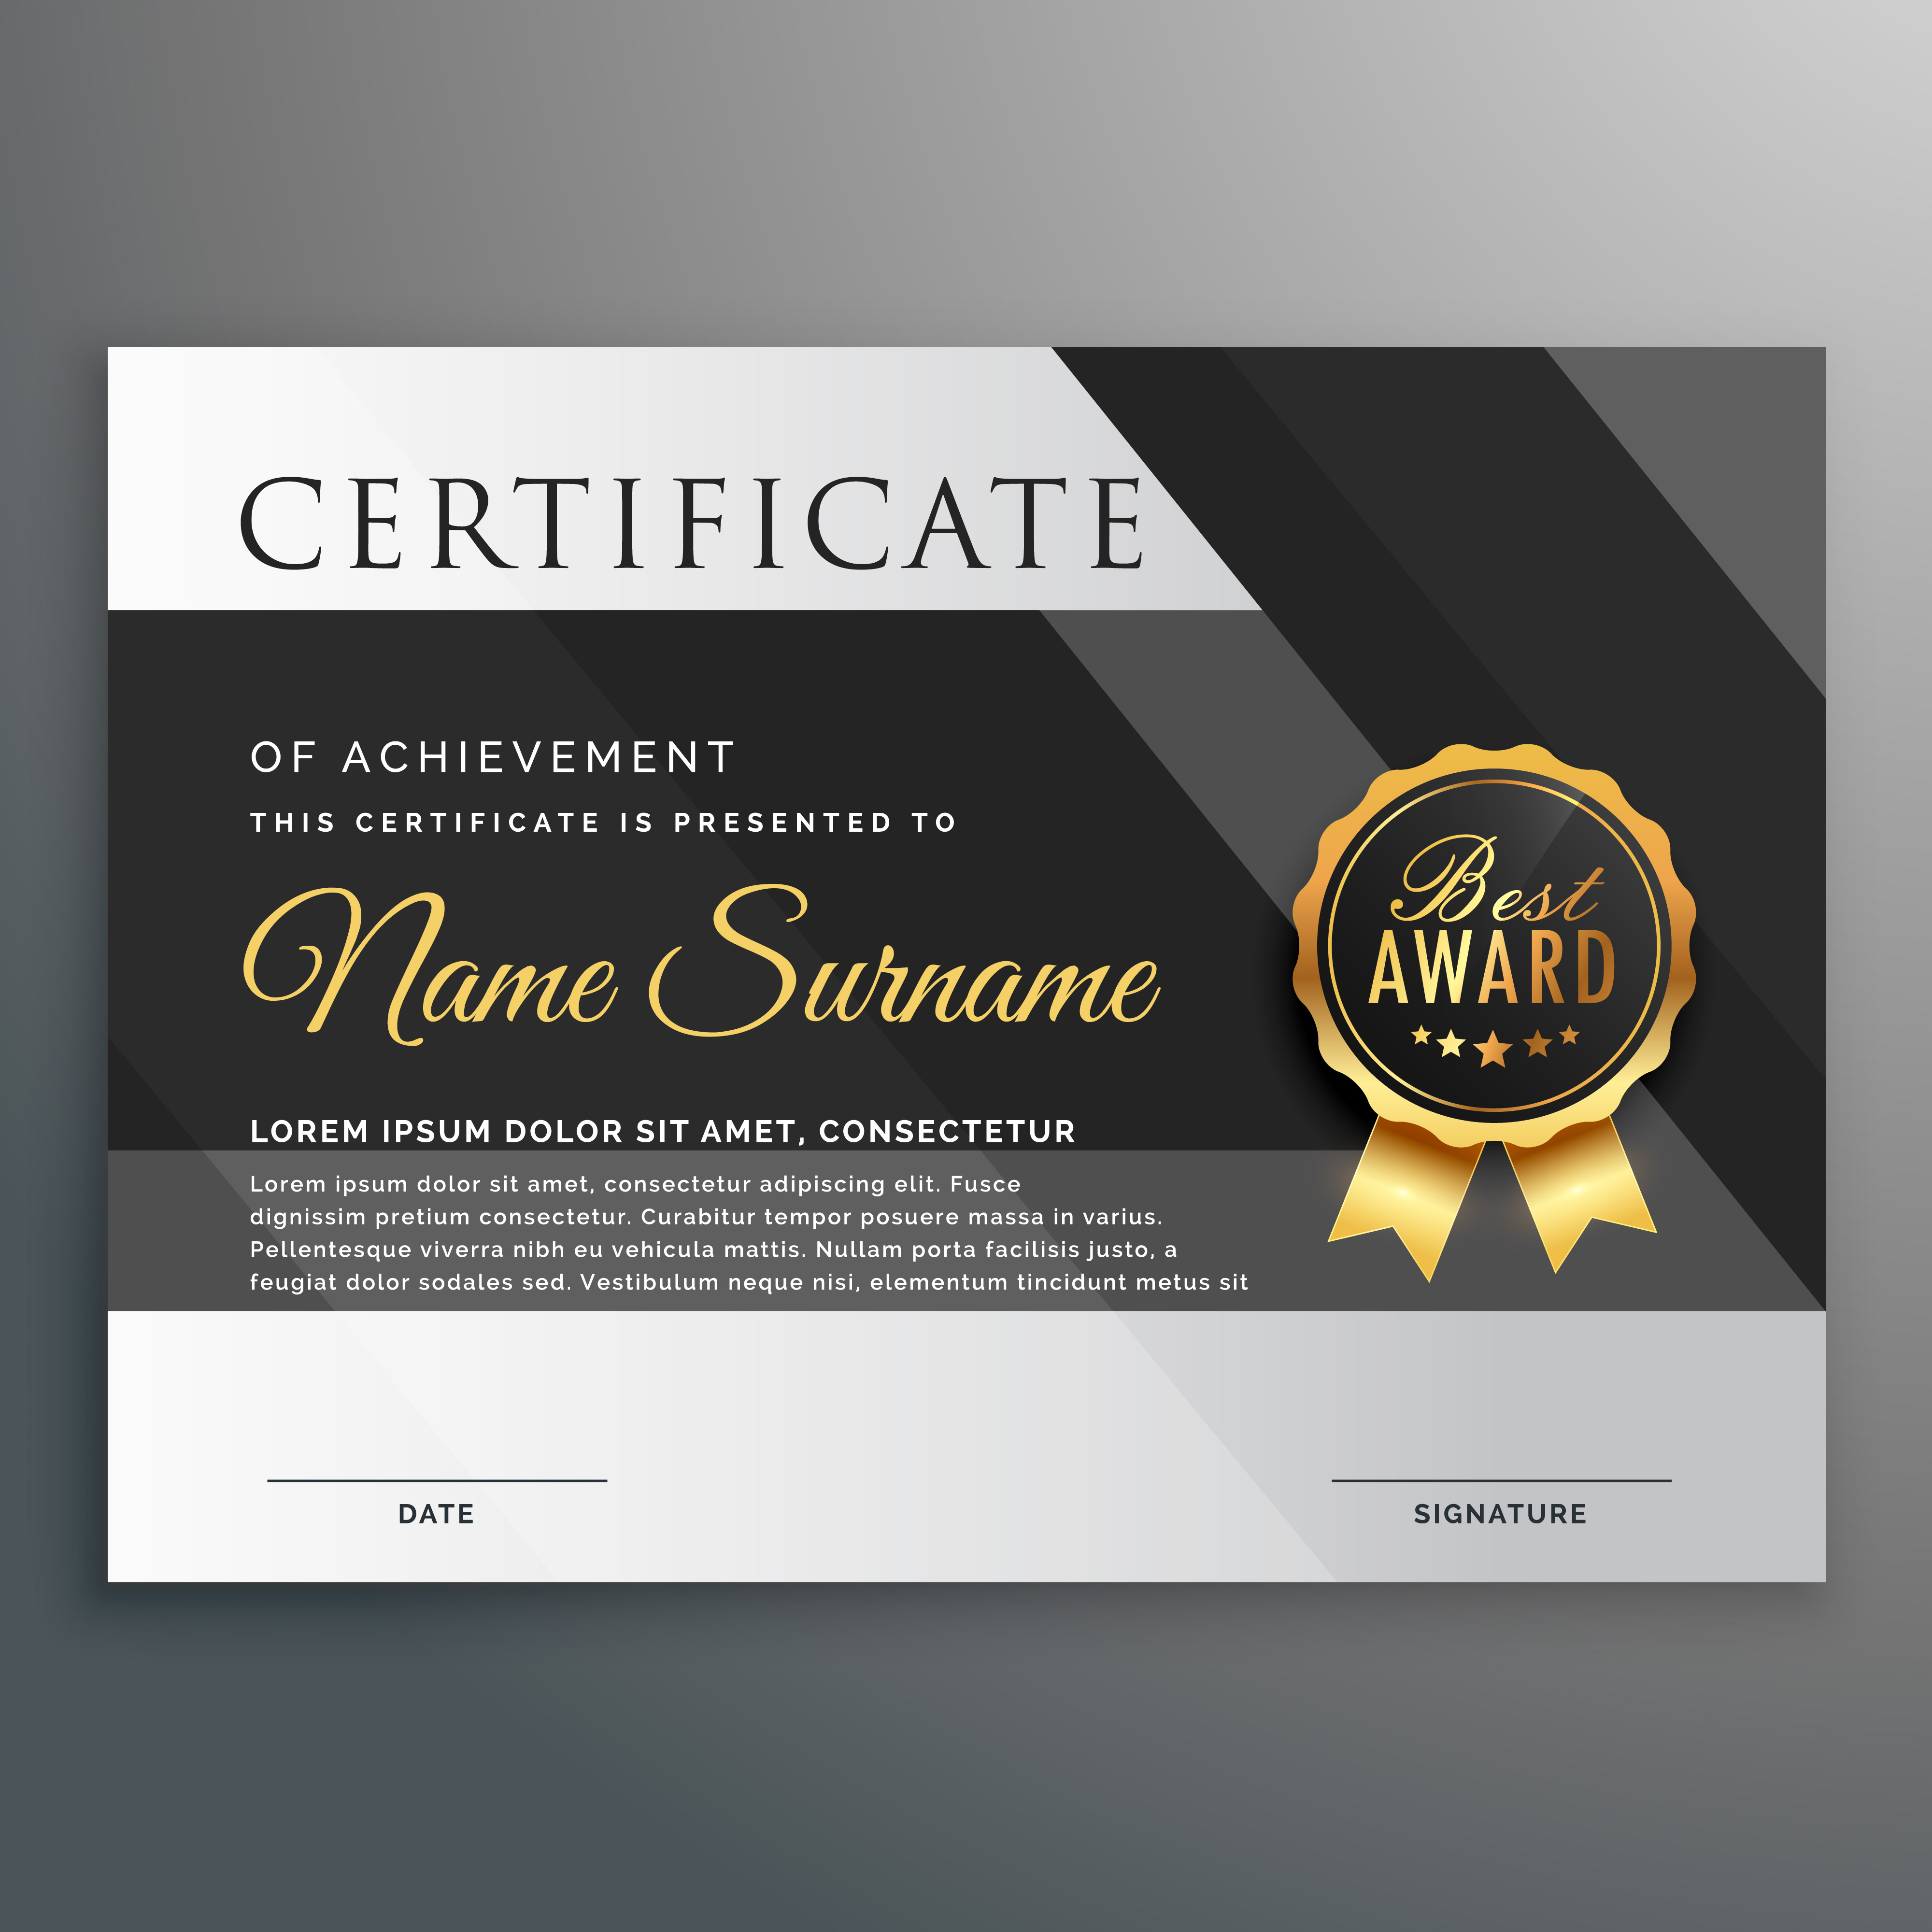 premium gold and black certificate design template